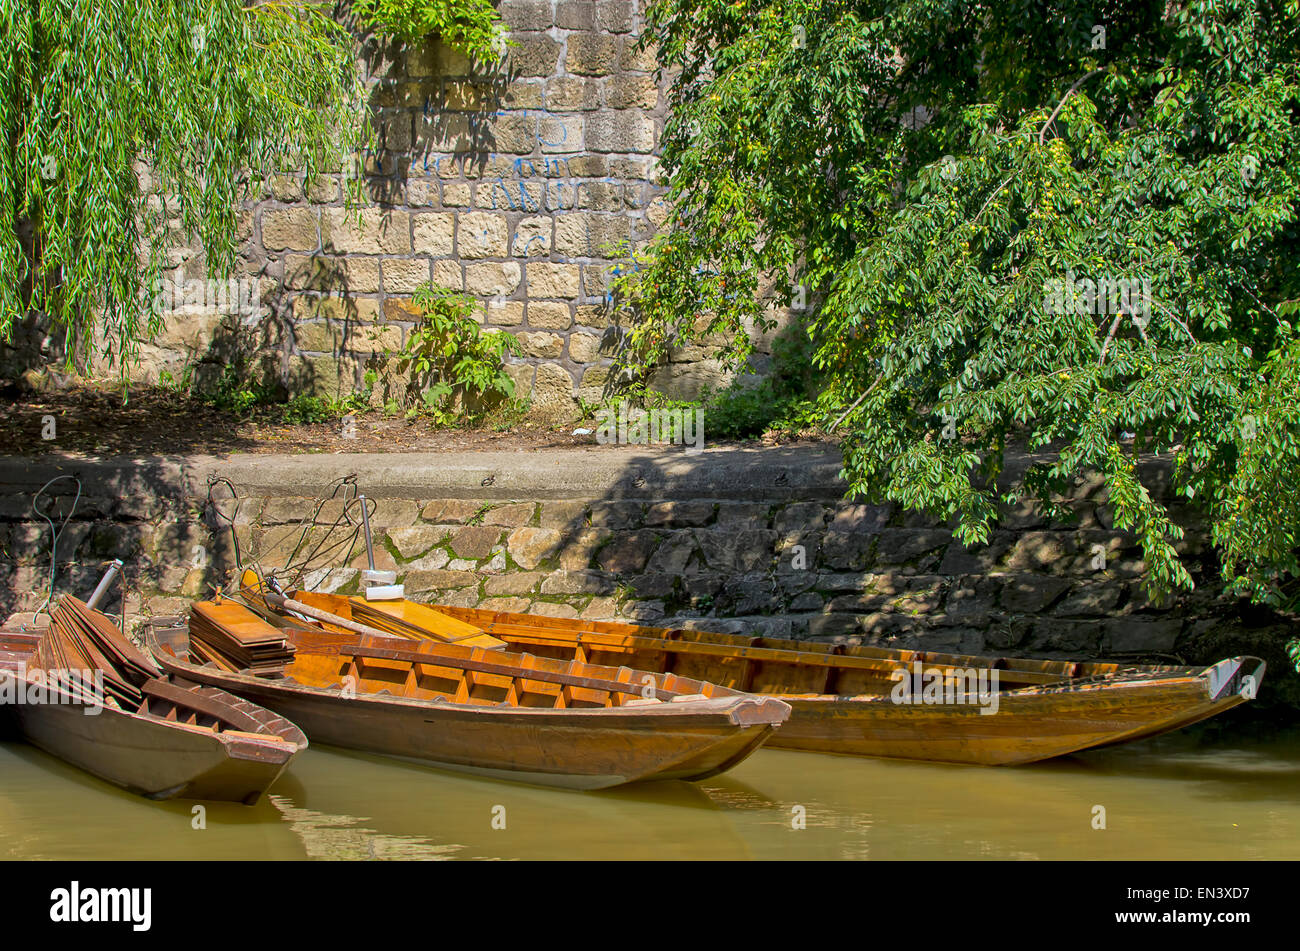 Barges in Tubingen, Germany. - Stock Image